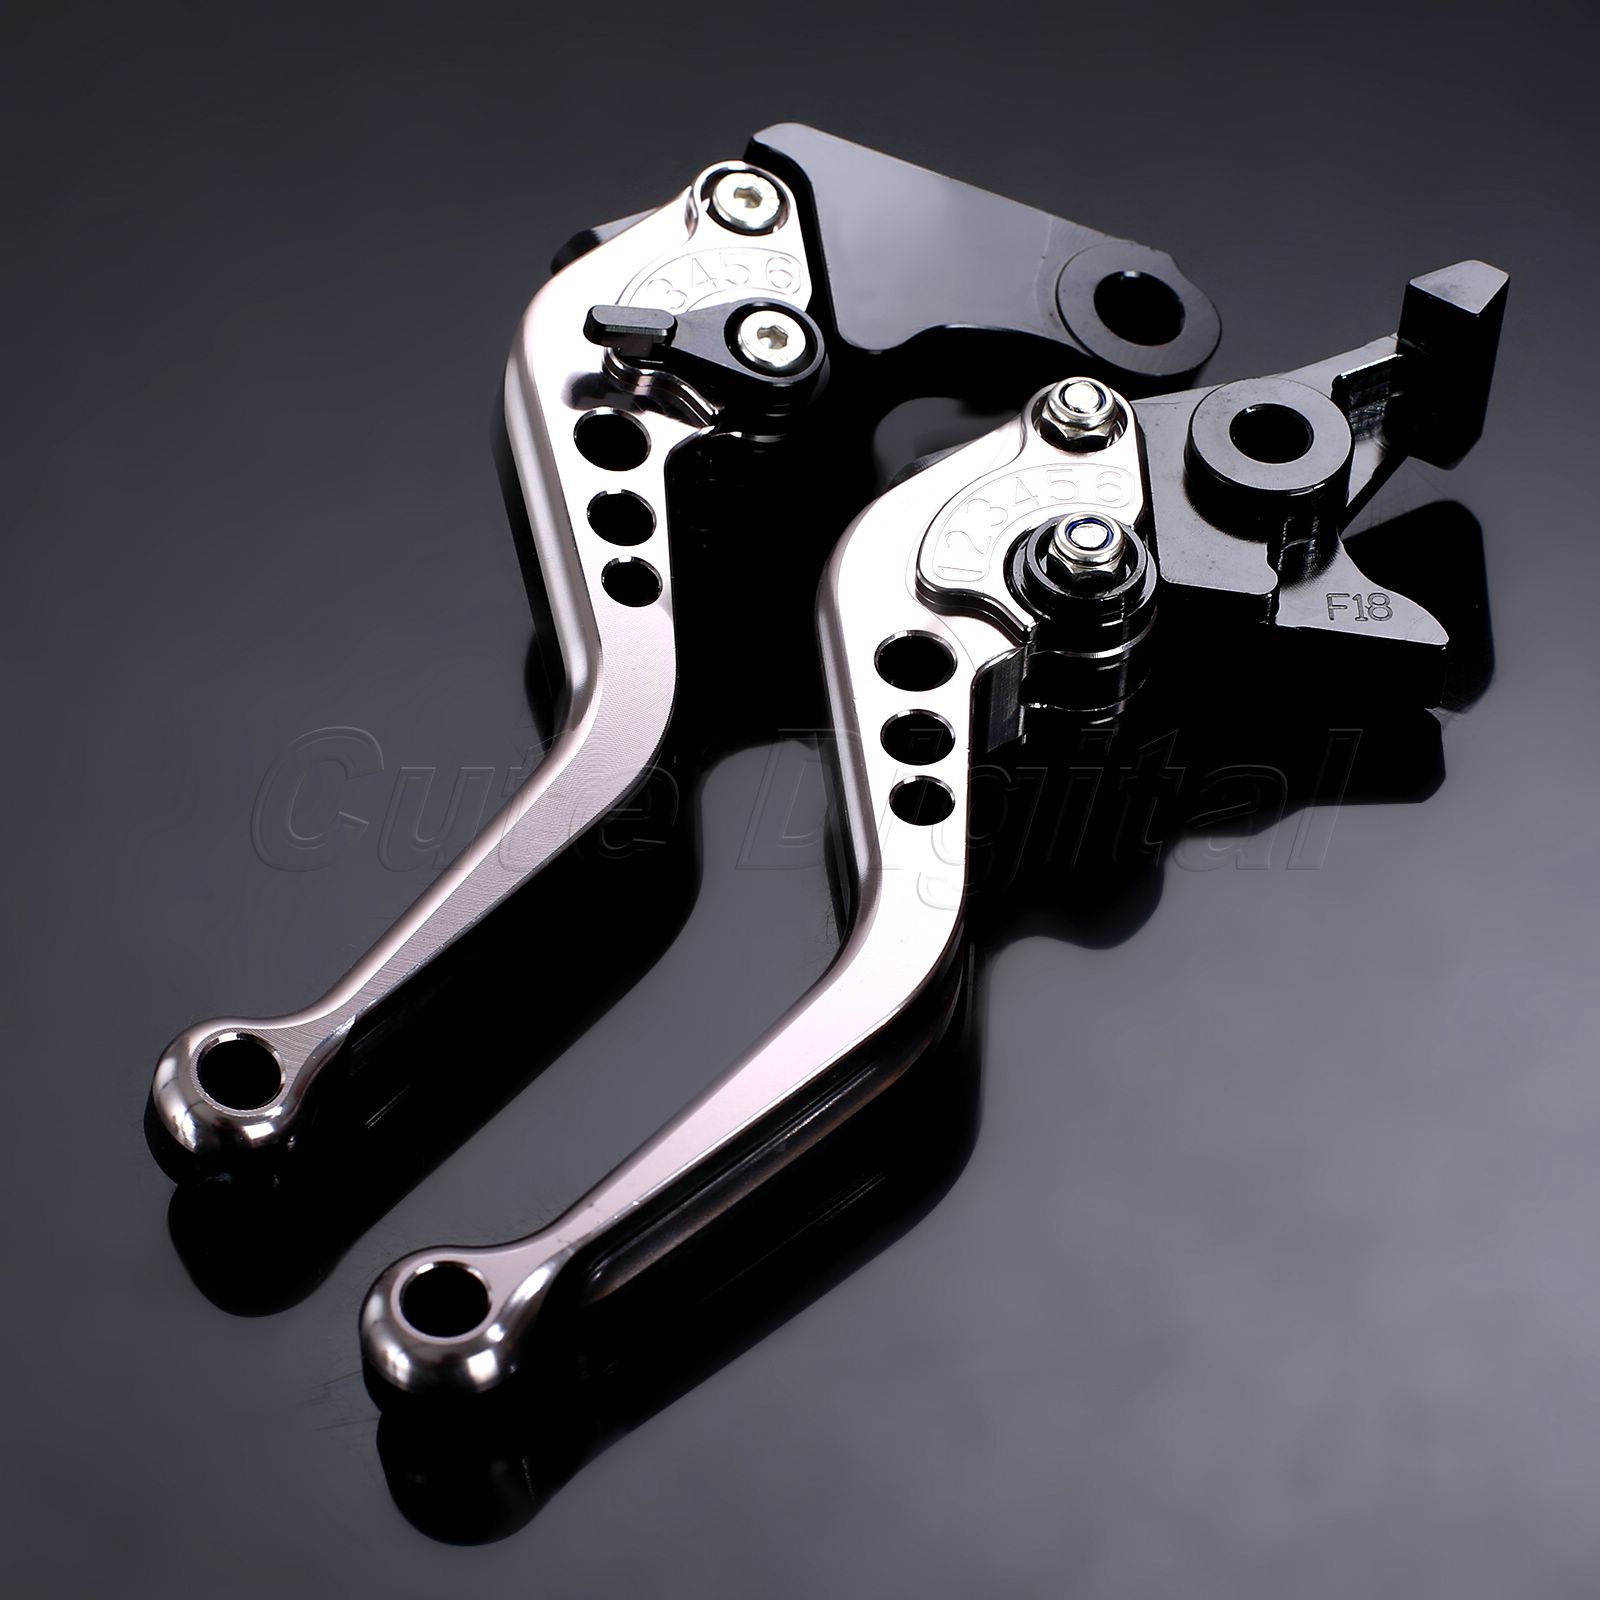 Mtsooning Motorcycle Brake Clutch Levers for Honda CBR300R 2014 2015 CBR500R/CB500F/X 2013 2014 2015 CNC Clutch Brake Levers adjustable short folding clutch brake levers for honda cbr 500 r cb 500 f x 2013 2014 2015 13 14 15 cbr500r cb500f cbr r 500